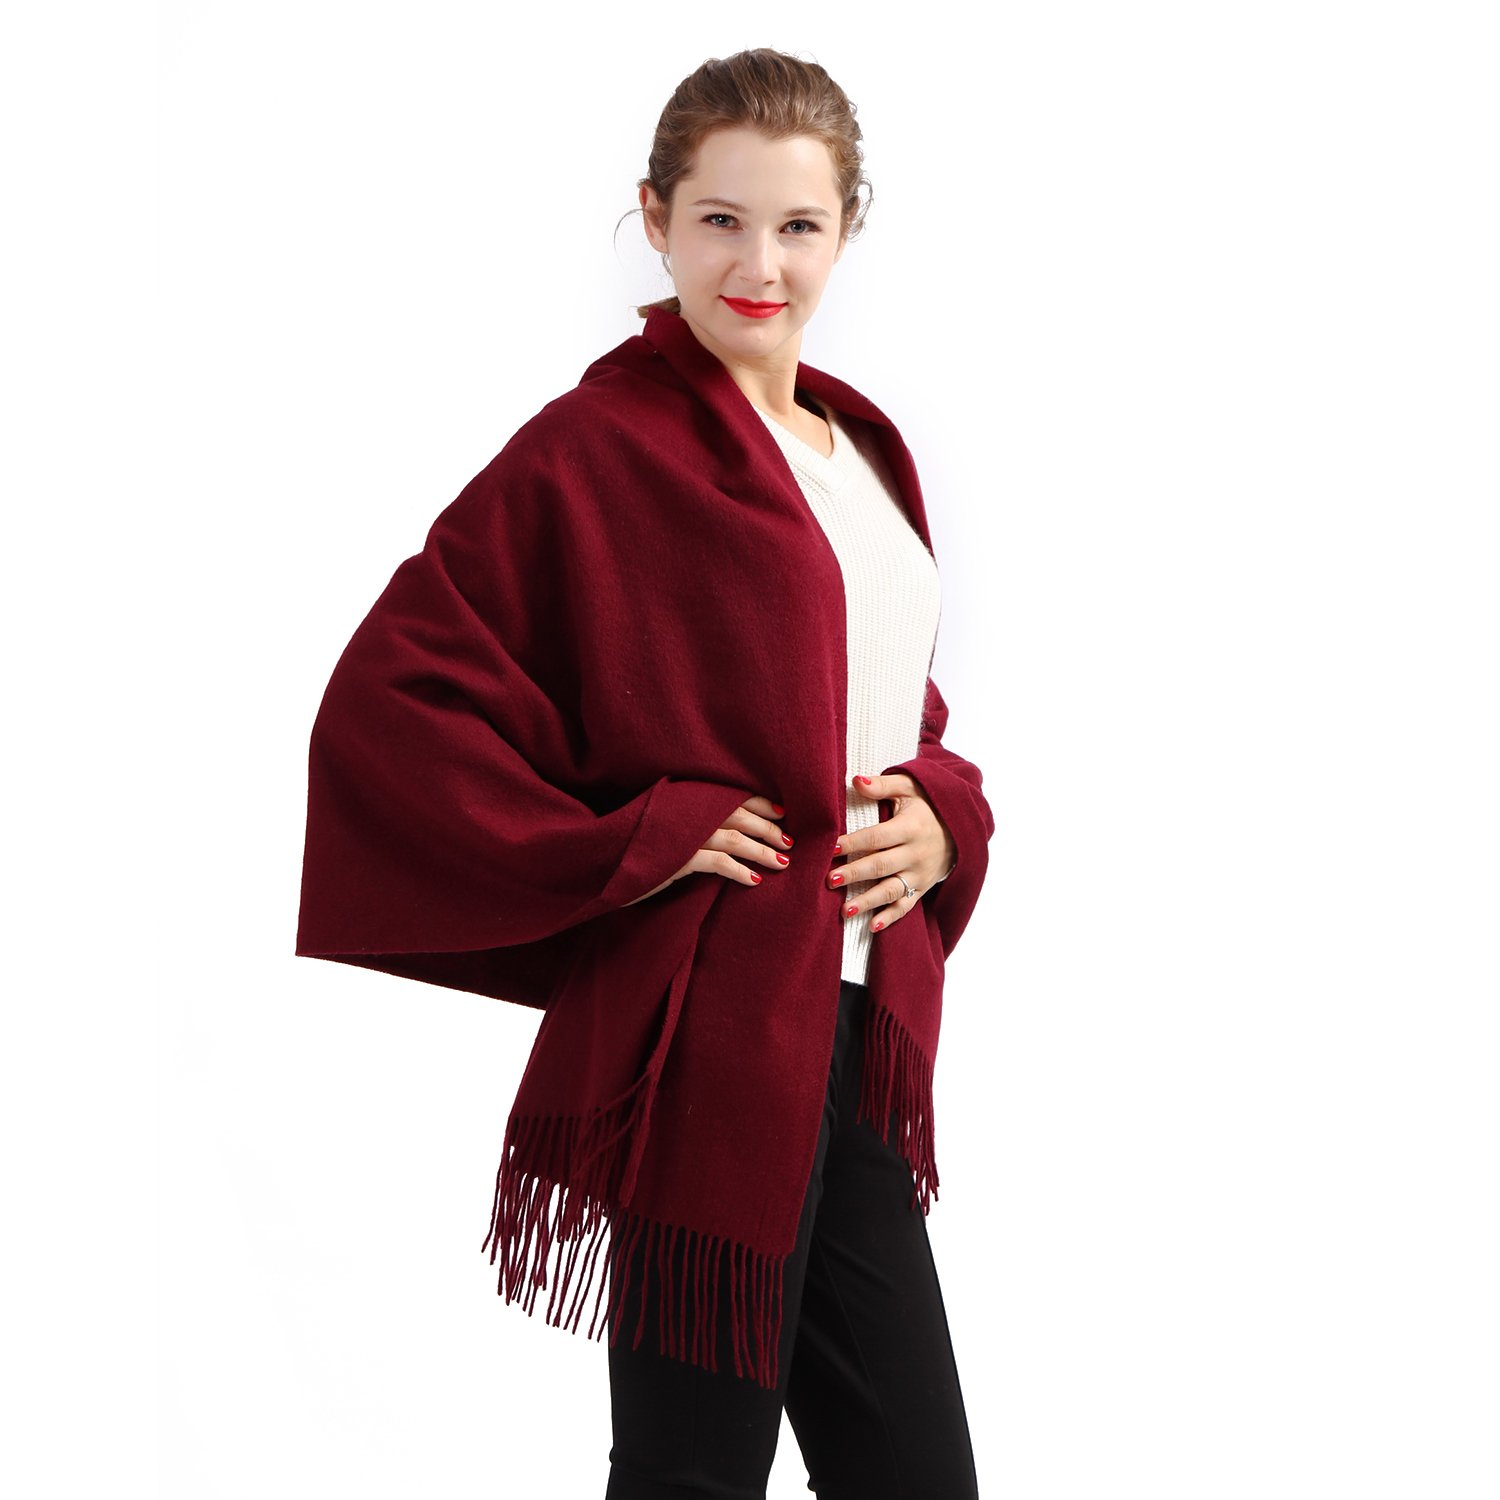 100% Cashmere Wrap Shawl Stole for Women, Guaranteed Quality Pure Cashmere, Super Soft and Warm Extra Large Scarf, Dark Red